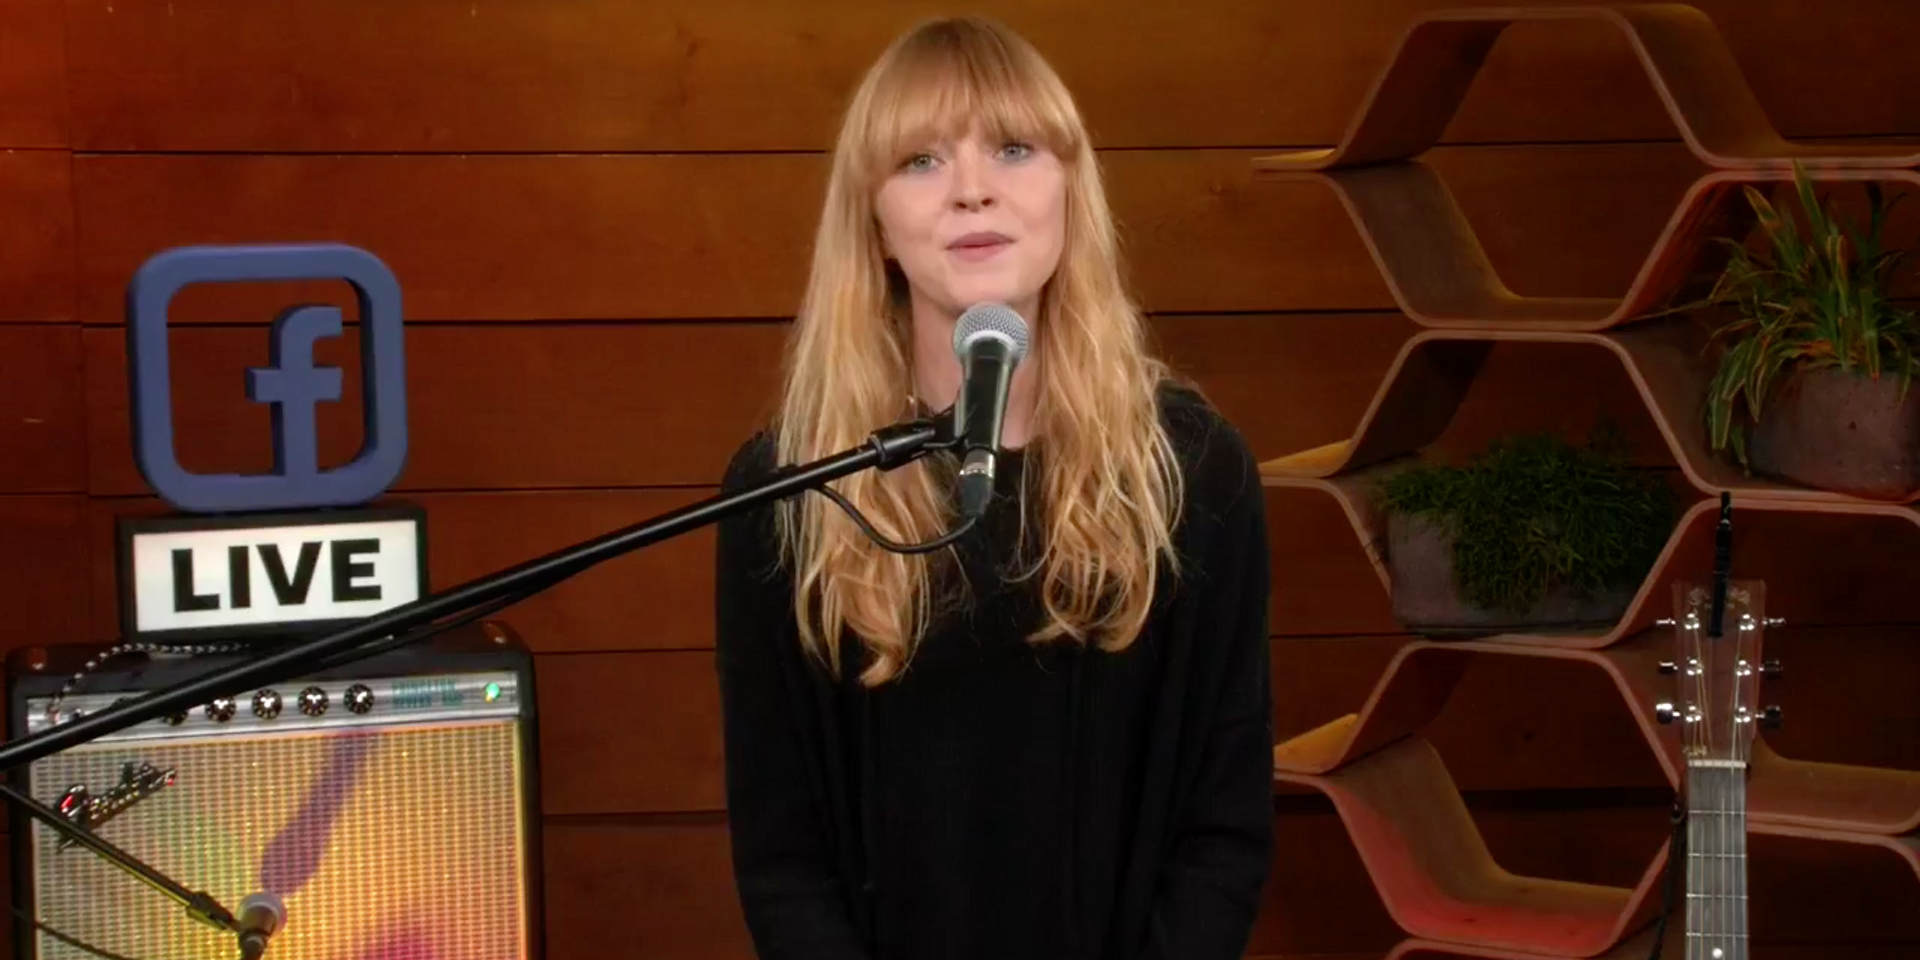 Lucy Rose answers fan questions and performs new tracks in Facebook live session – watch